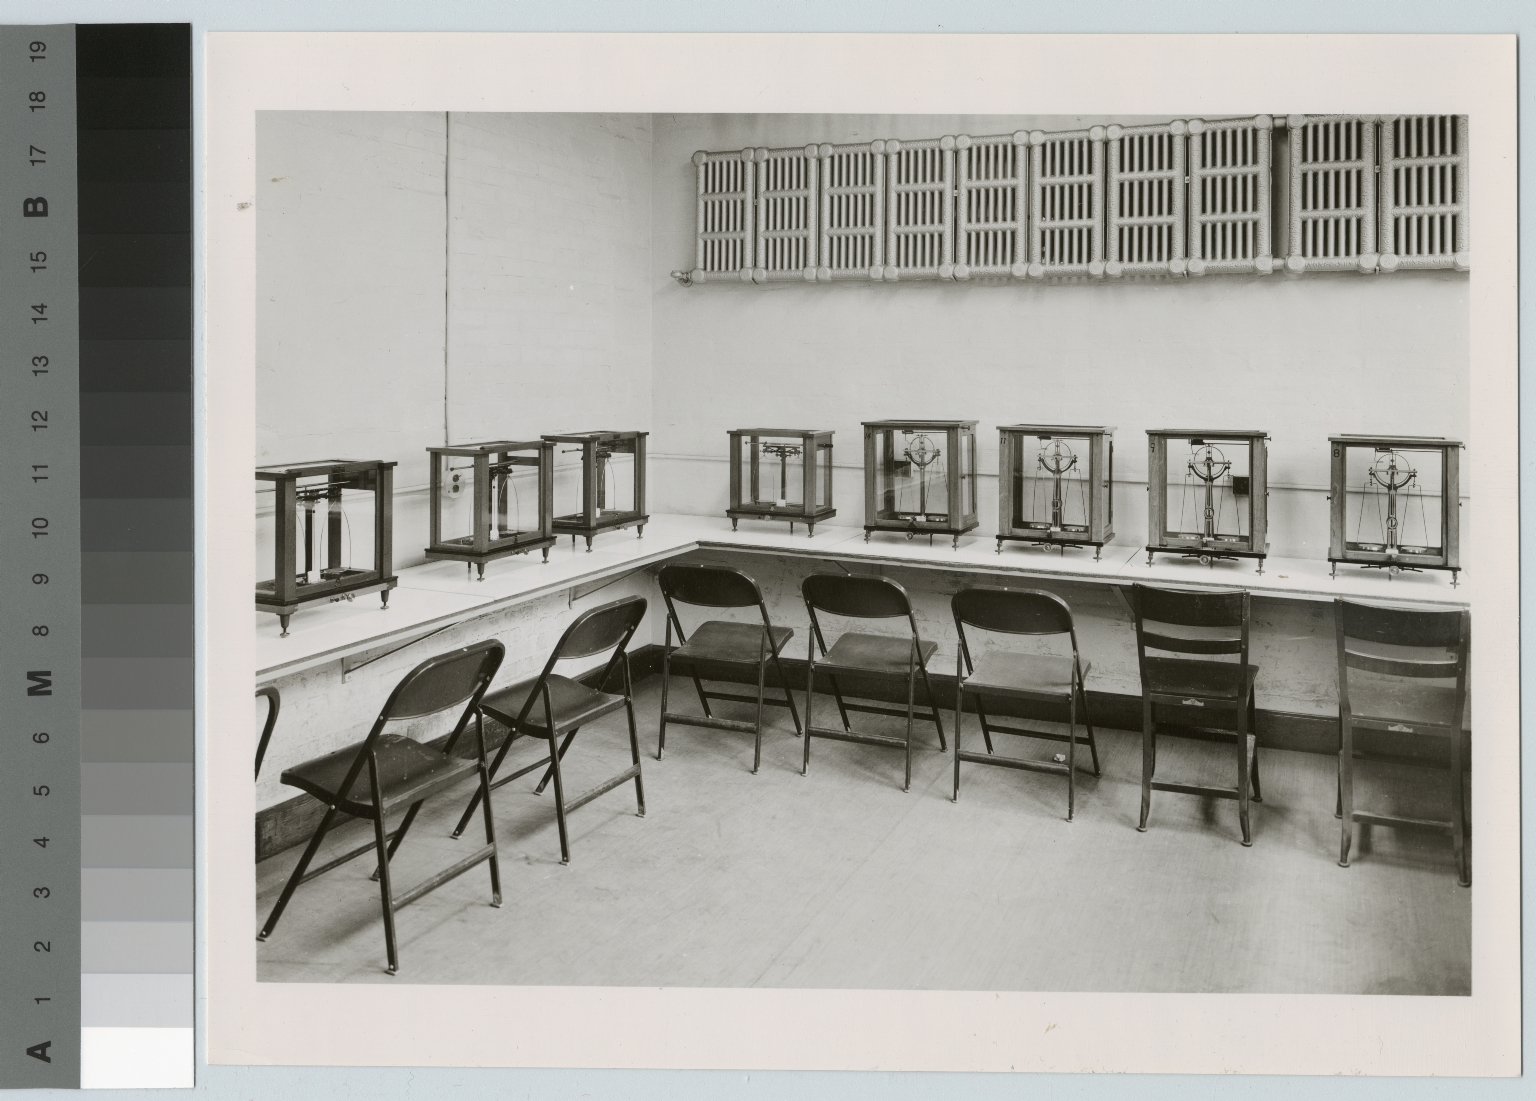 Academics, Chemistry, interior view of a Rochester Athenaeum and Mechanics Institute chemistry classsroom with scales, [1900-1945]